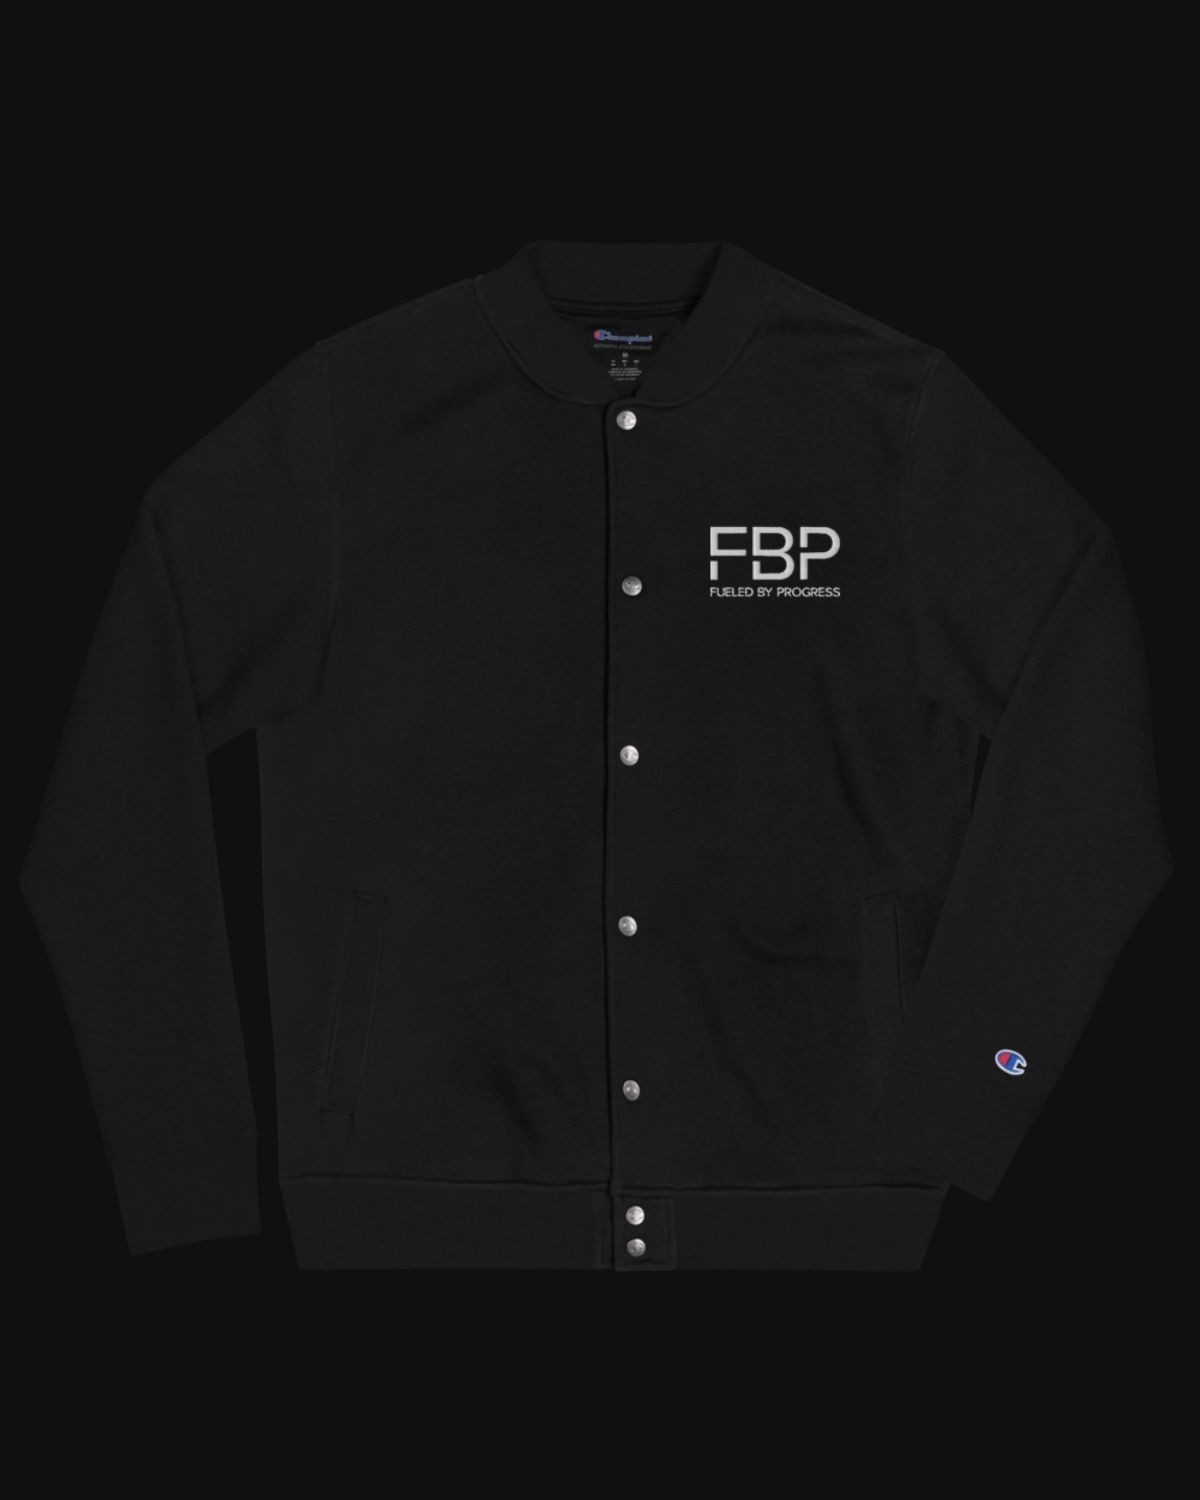 FBP x Champion Bomber Jacket - Black